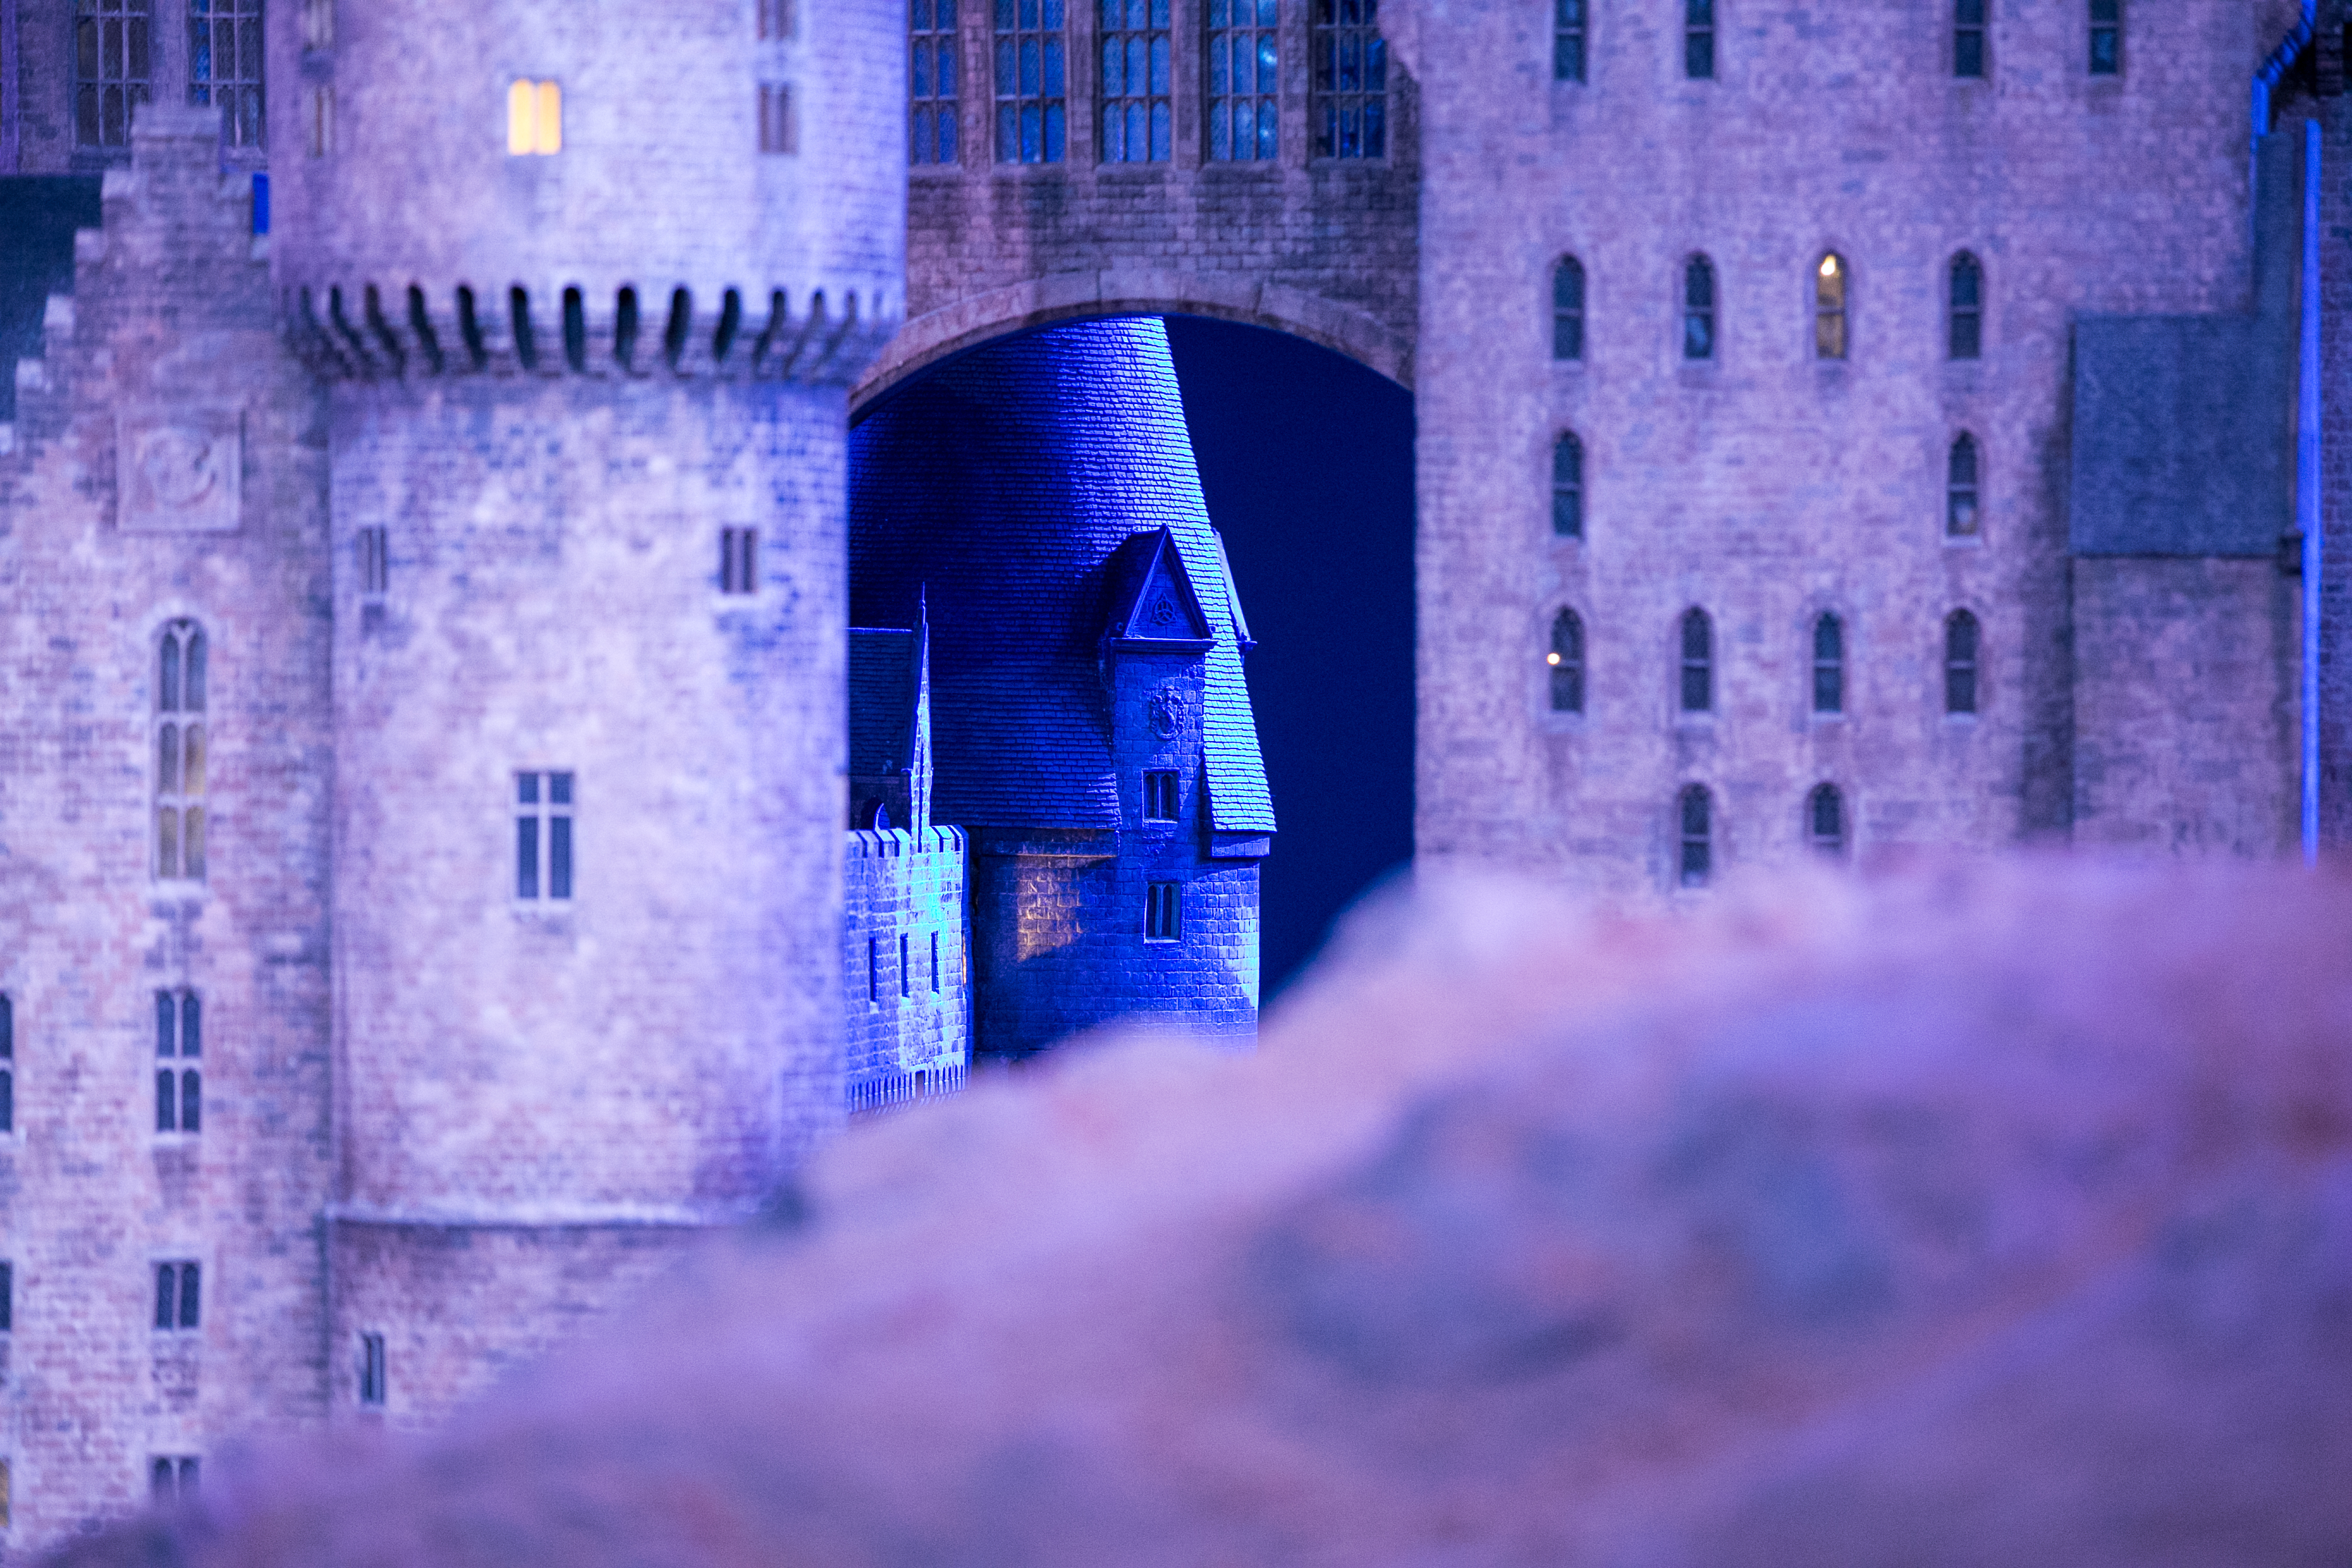 harry-potter-studio-tour-hogwarts-detail-castle